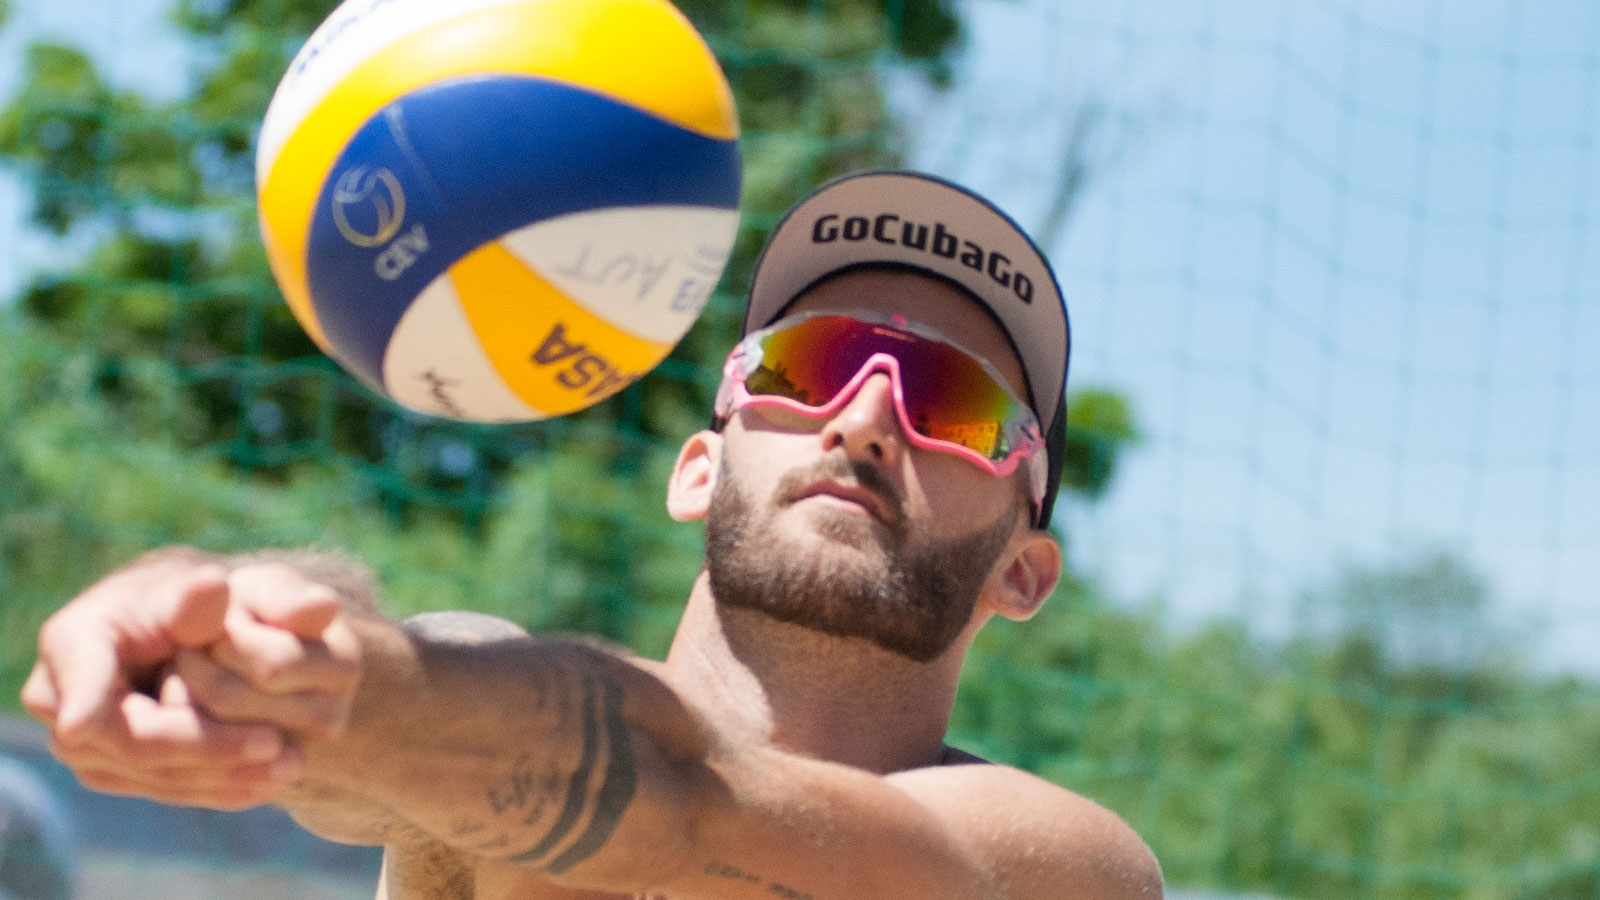 Sponsoring Go Cuba Go - Beachvolleyball-Team Winter-Hörl | 2019 (Tobias Winter, Baggern) © Team Winter Hörl